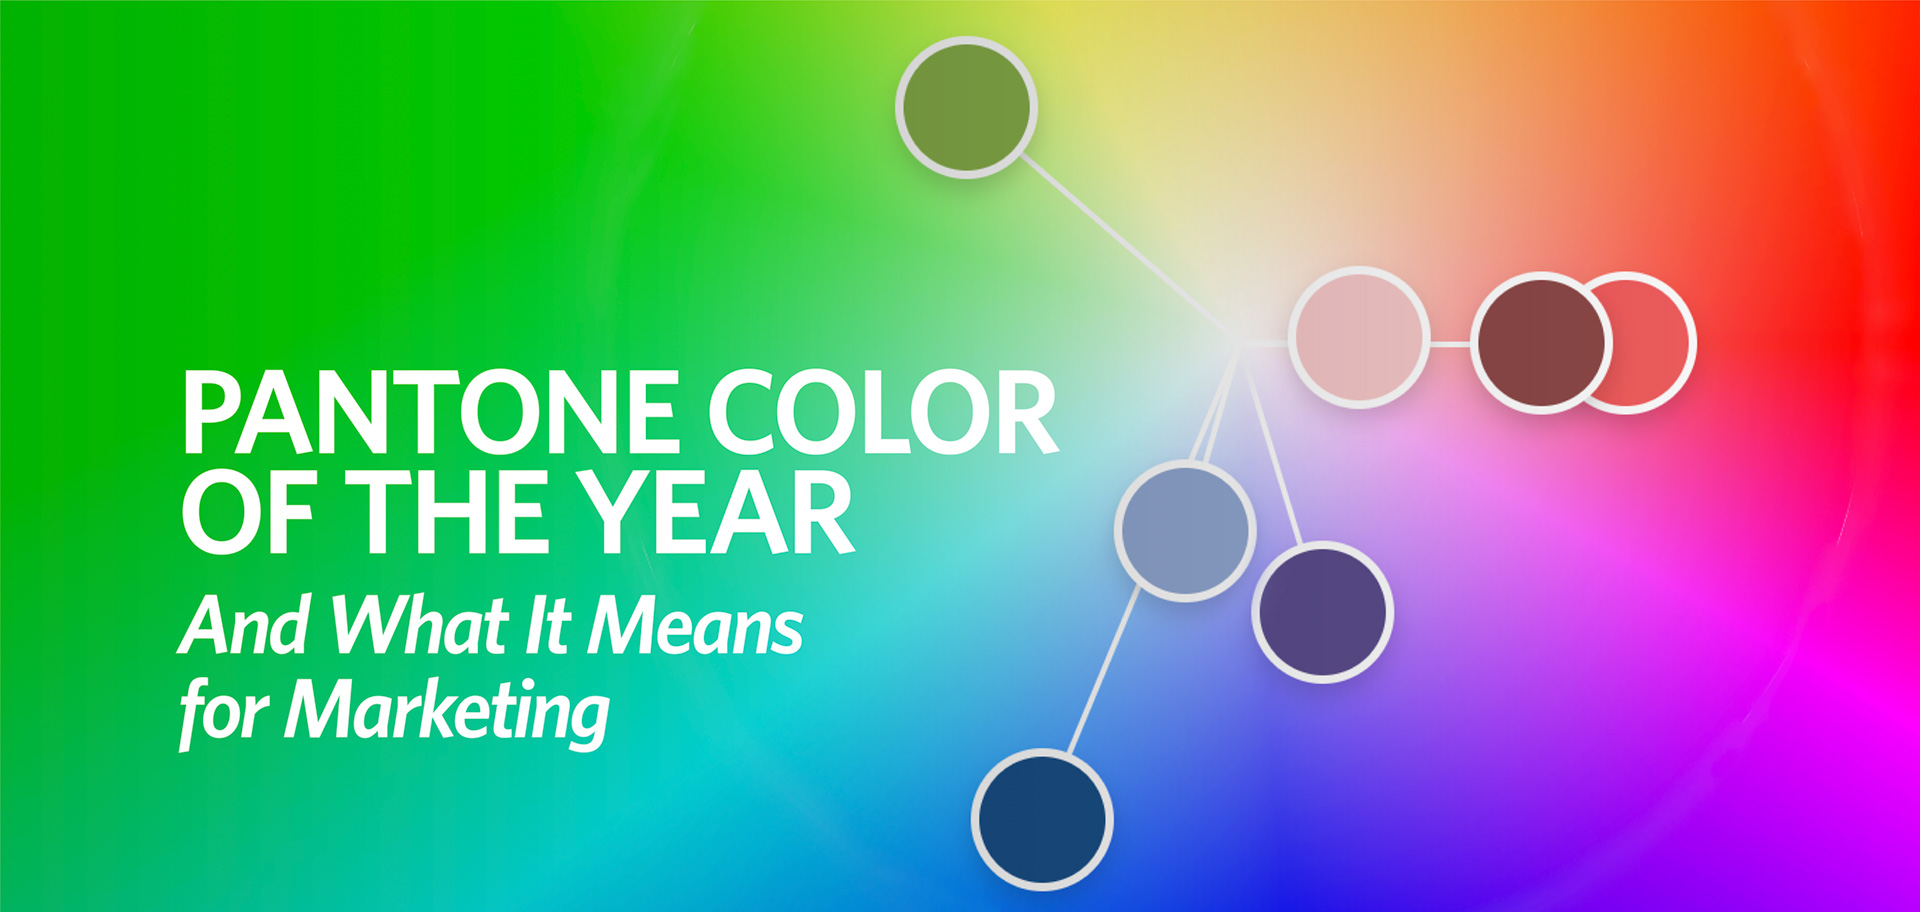 Pantone Color of the Year 2020 Classic Blue, color psychology, color marketing, past colors of the year, Kettle Fire Creative pantone Pantone Color of the Year & What It Means for Marketing pantone colors fi